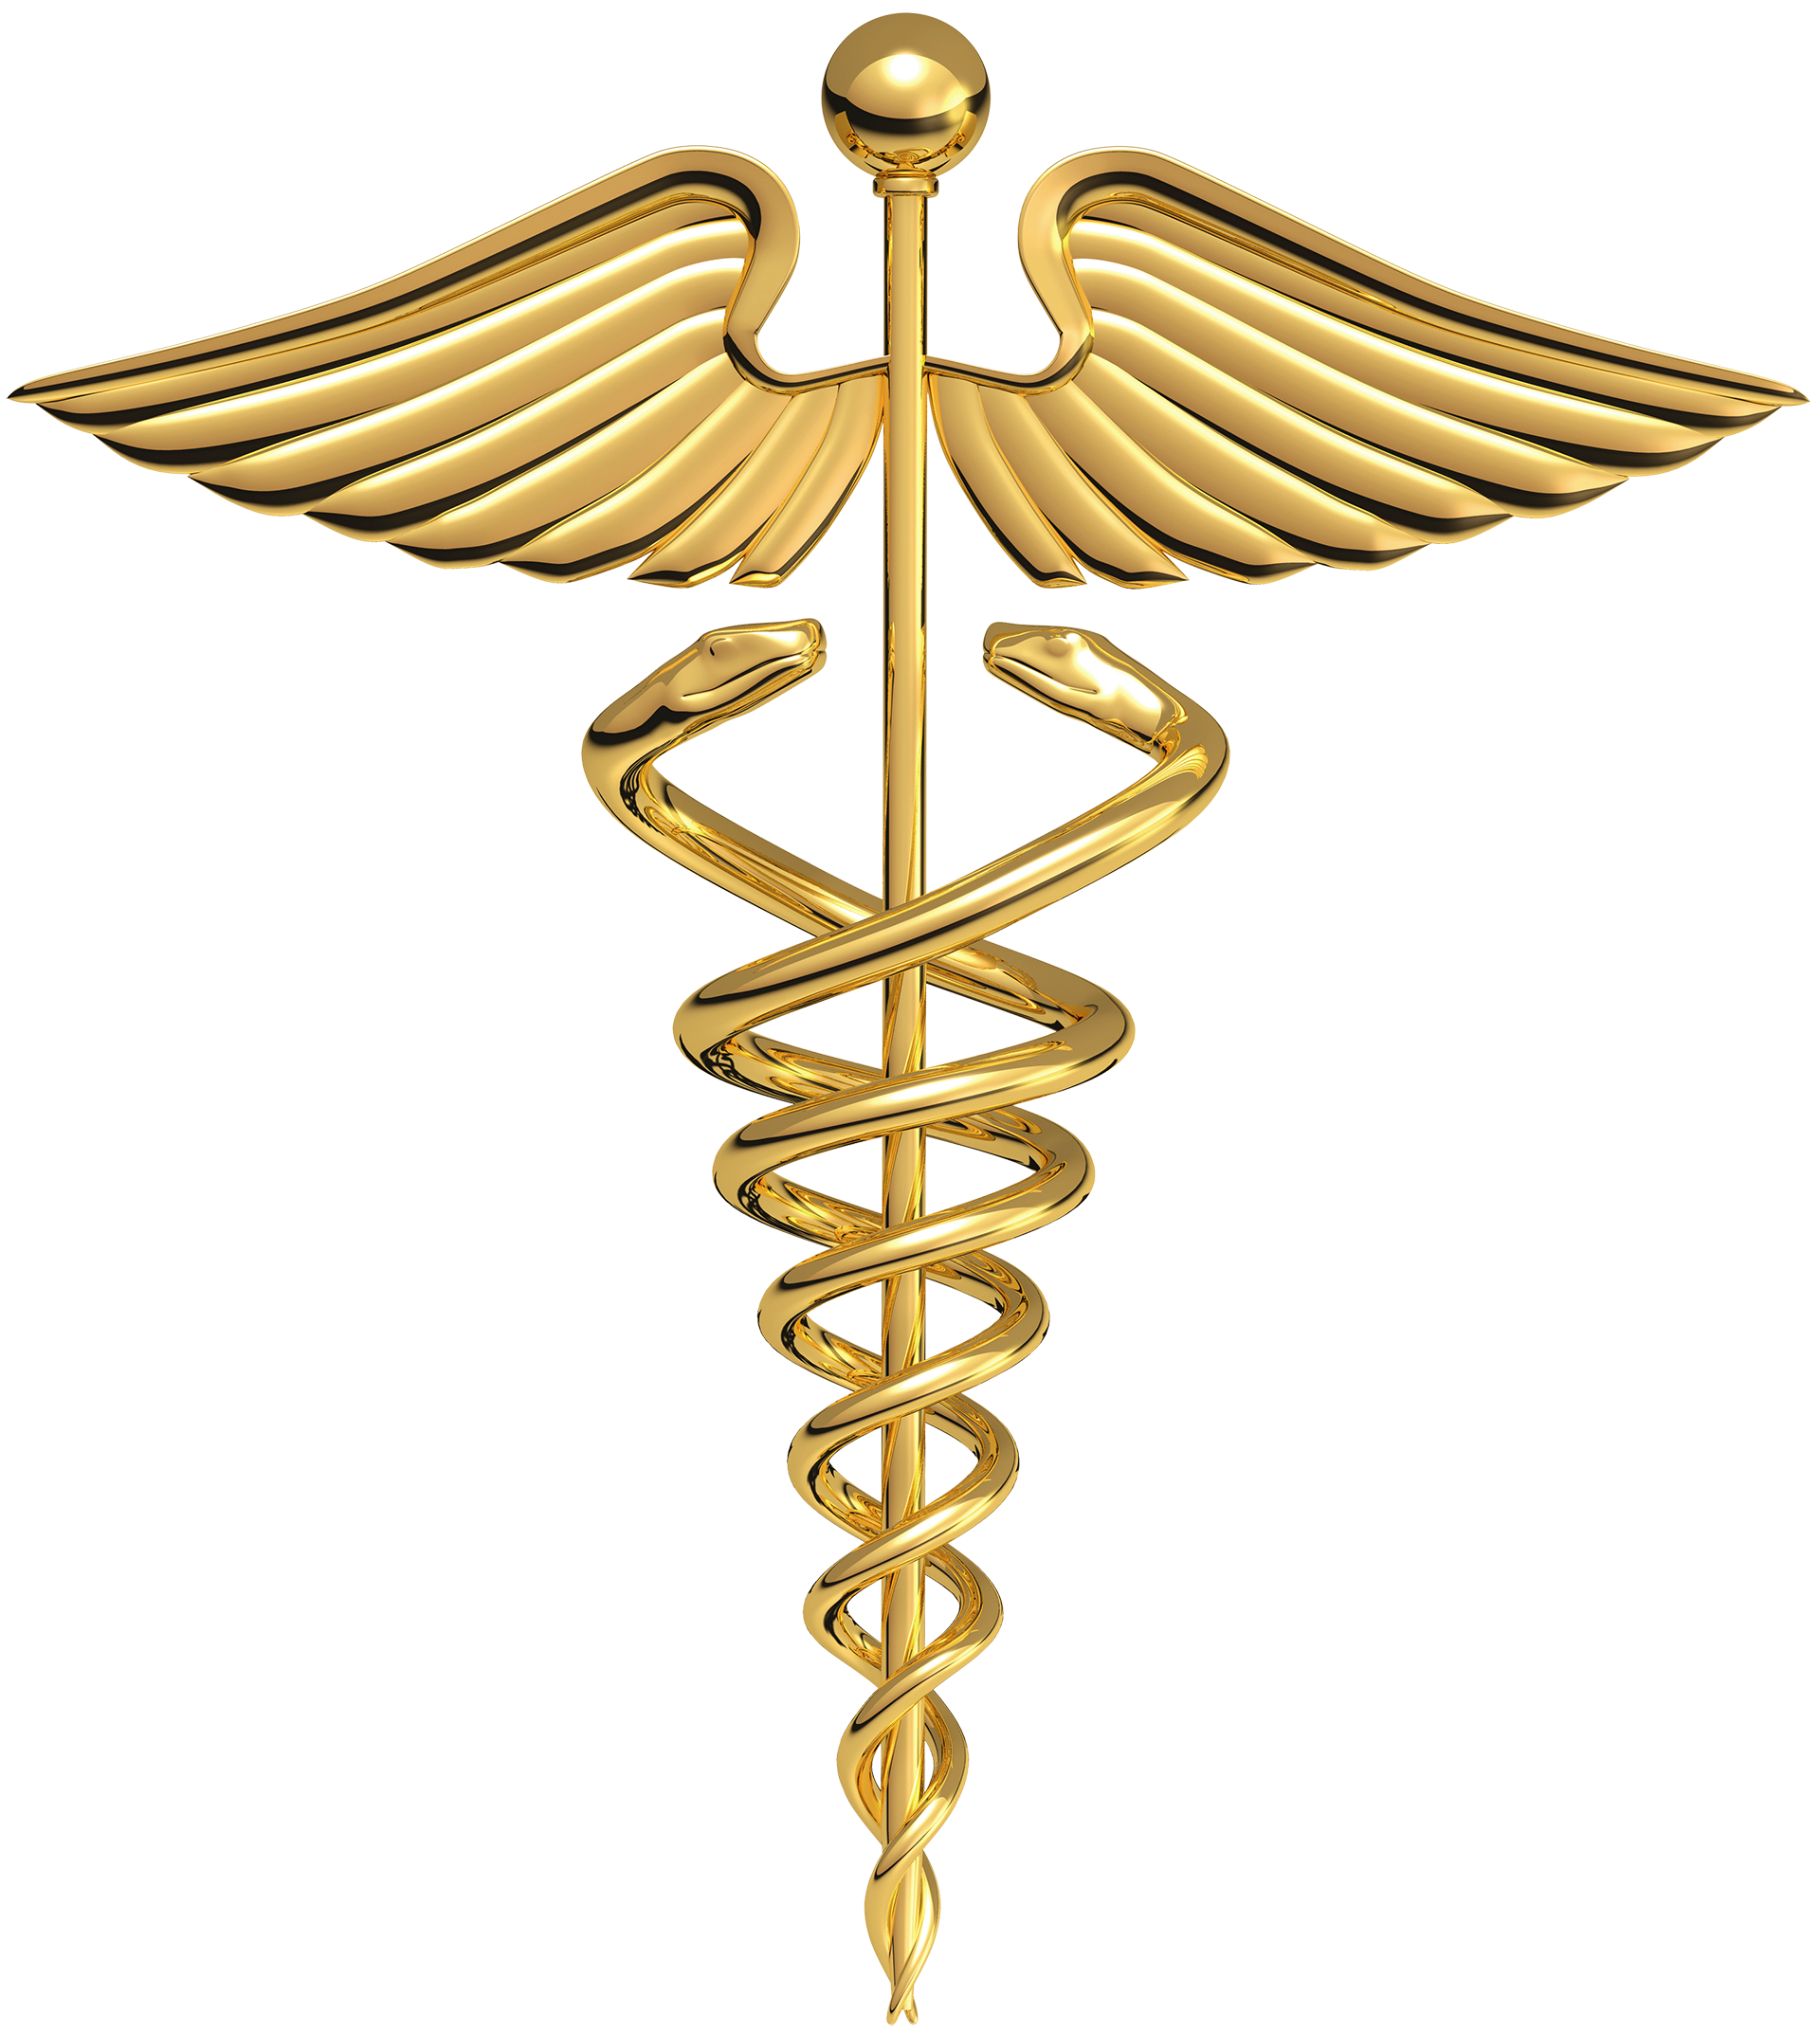 Caduceus - HEALTH - Messenger of the gods - DO NO HARM